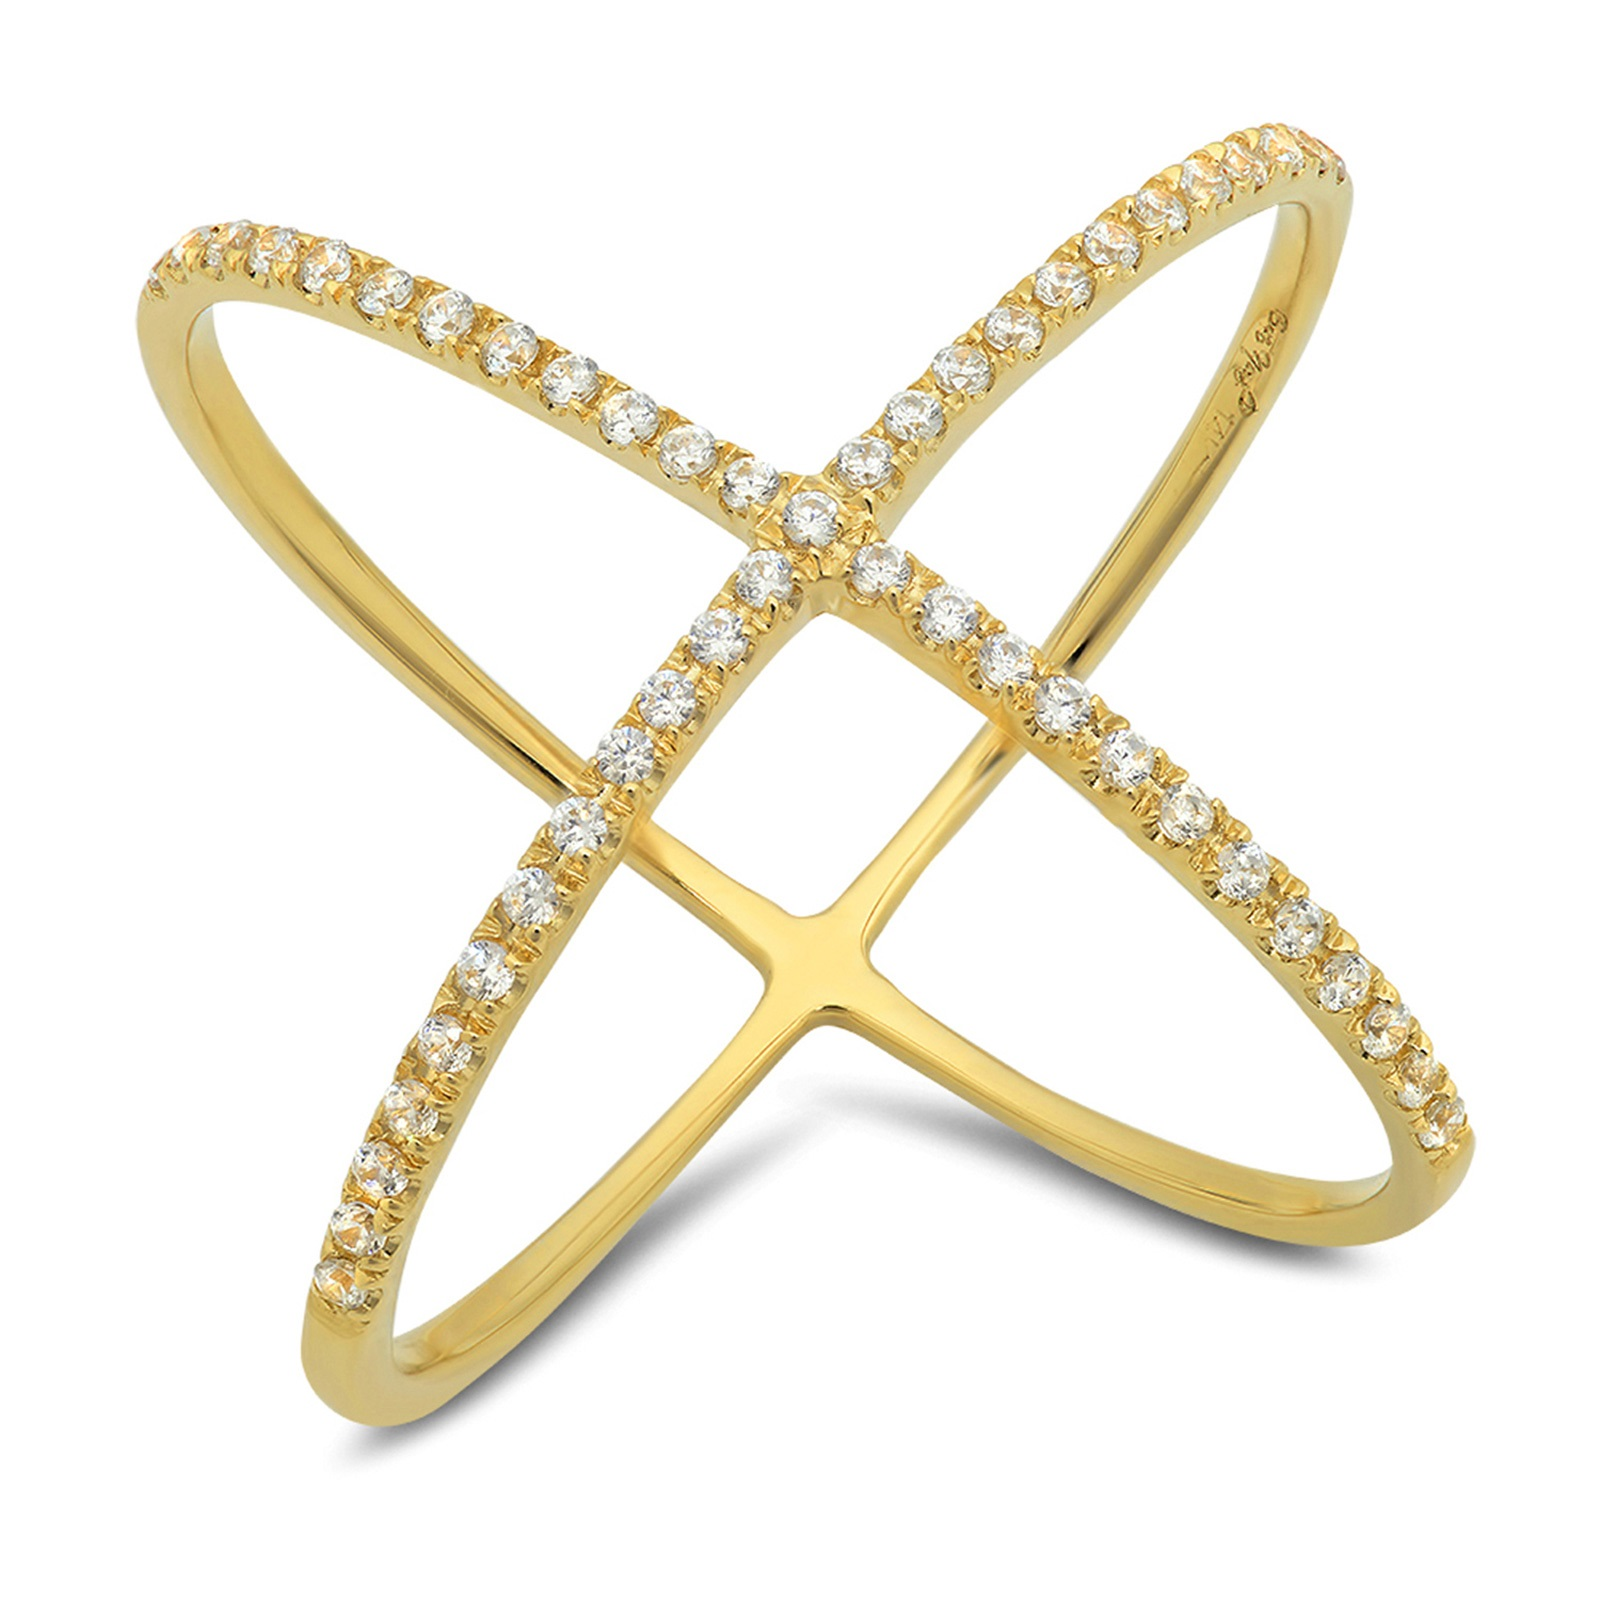 0.58 CT Round Cut Sim Diamond Pave Engagement Contemporary Cross Design Ring Band 14k Yellow Gold, Size 4.5